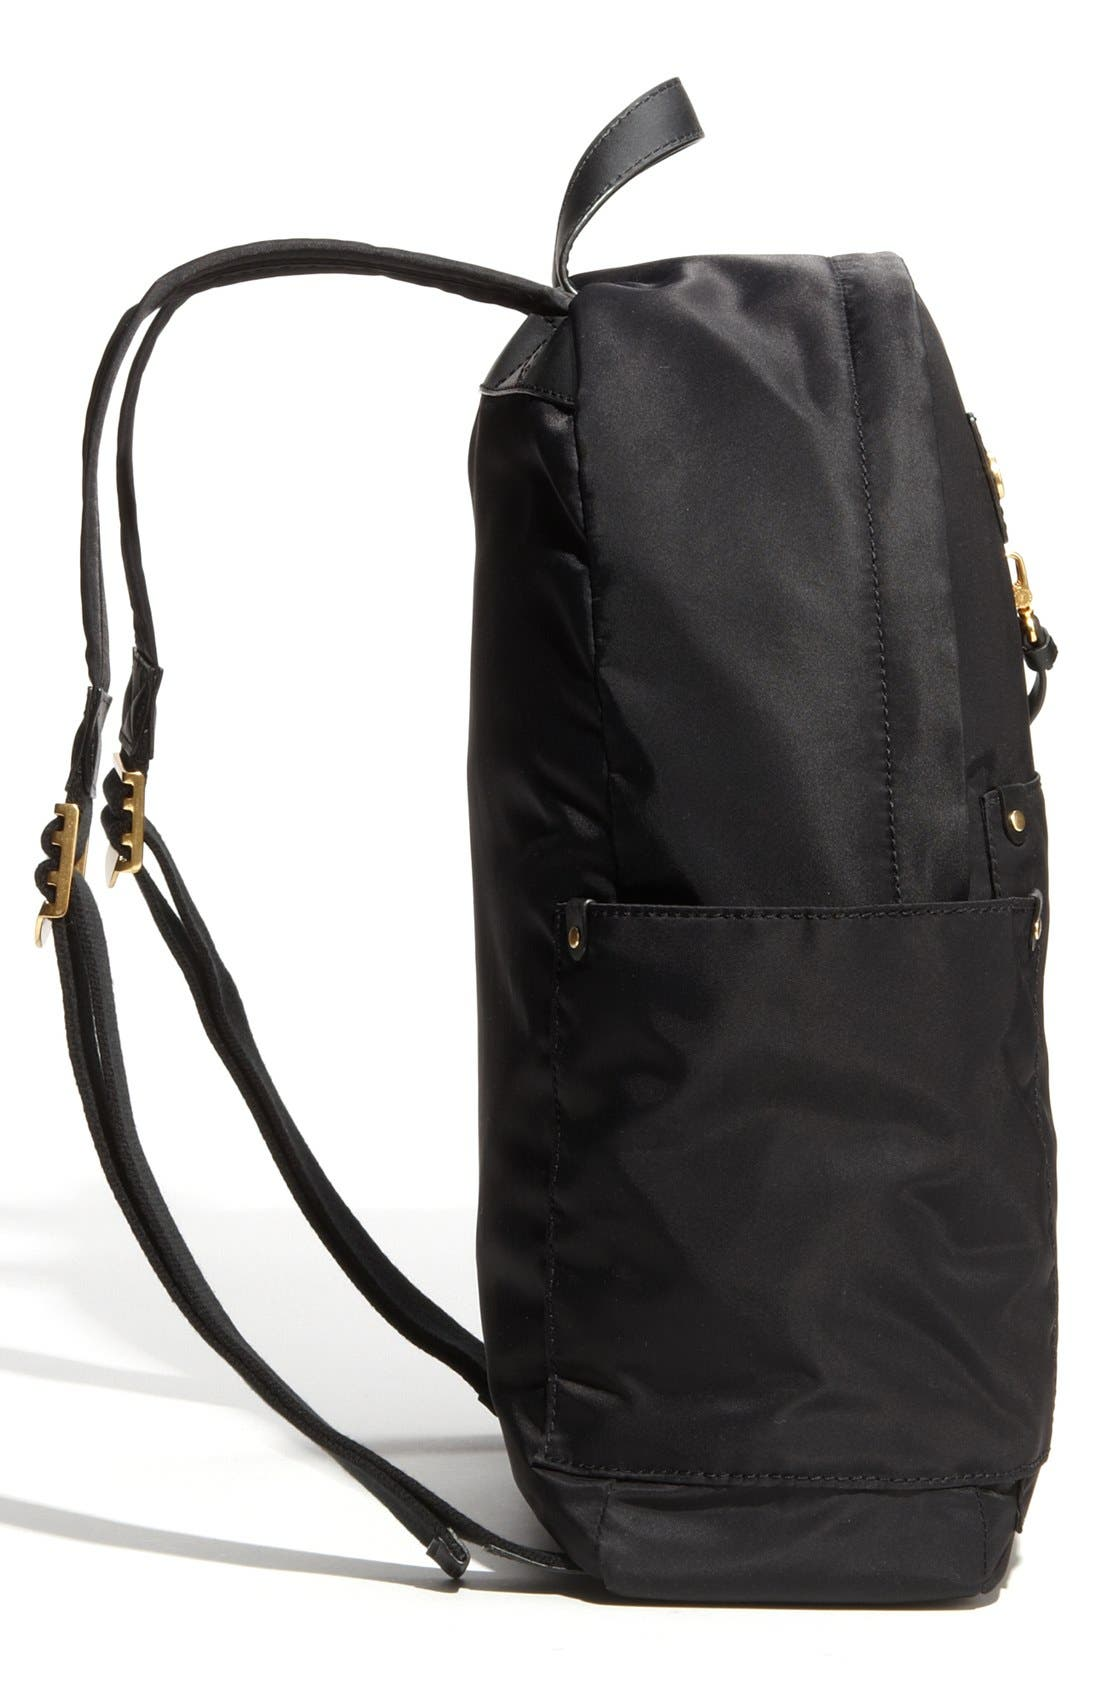 MARC JACOBS,                             MARC BY MARC JACOBS 'Preppy Nylon' Backpack,                             Alternate thumbnail 3, color,                             002